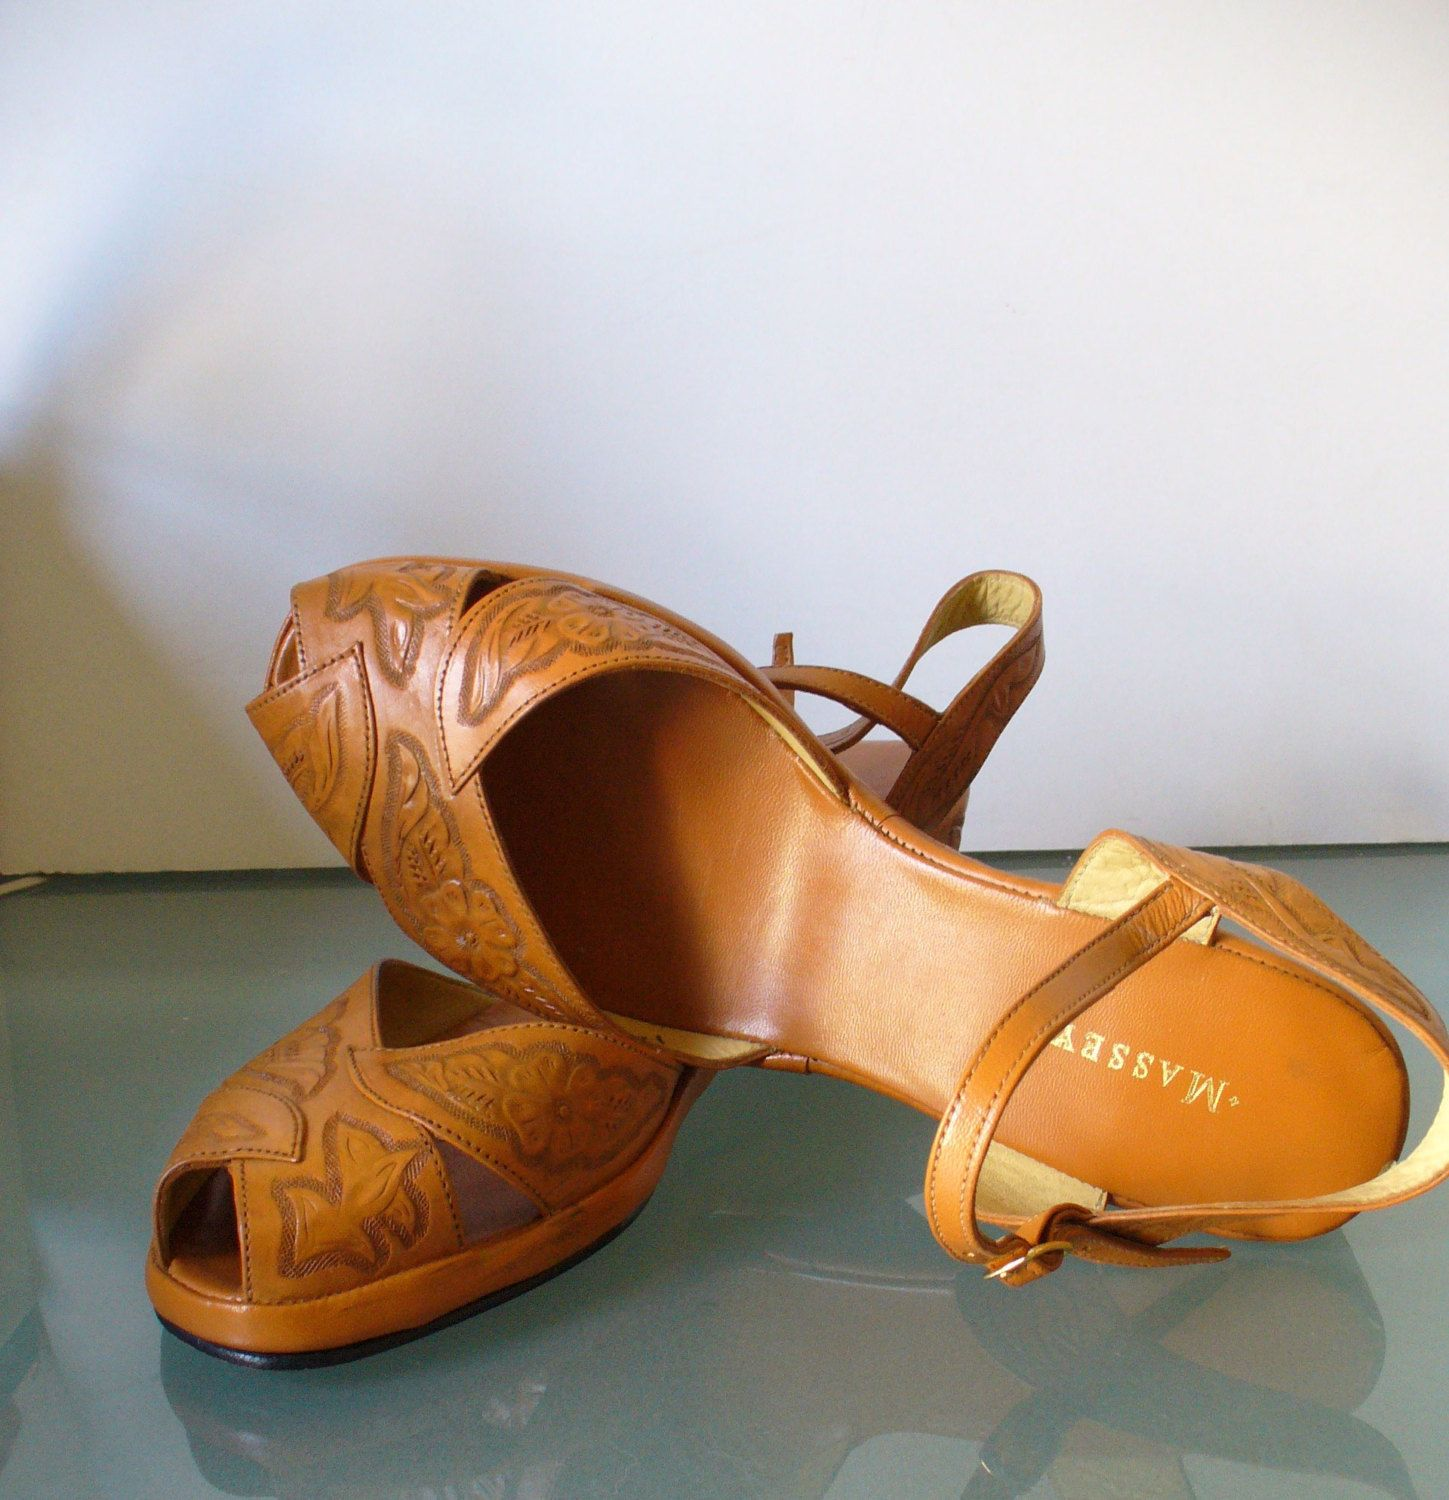 6a22669911635 Vintage Mexican Tooled Leather Wedge Heel Sandals Size 12US ...